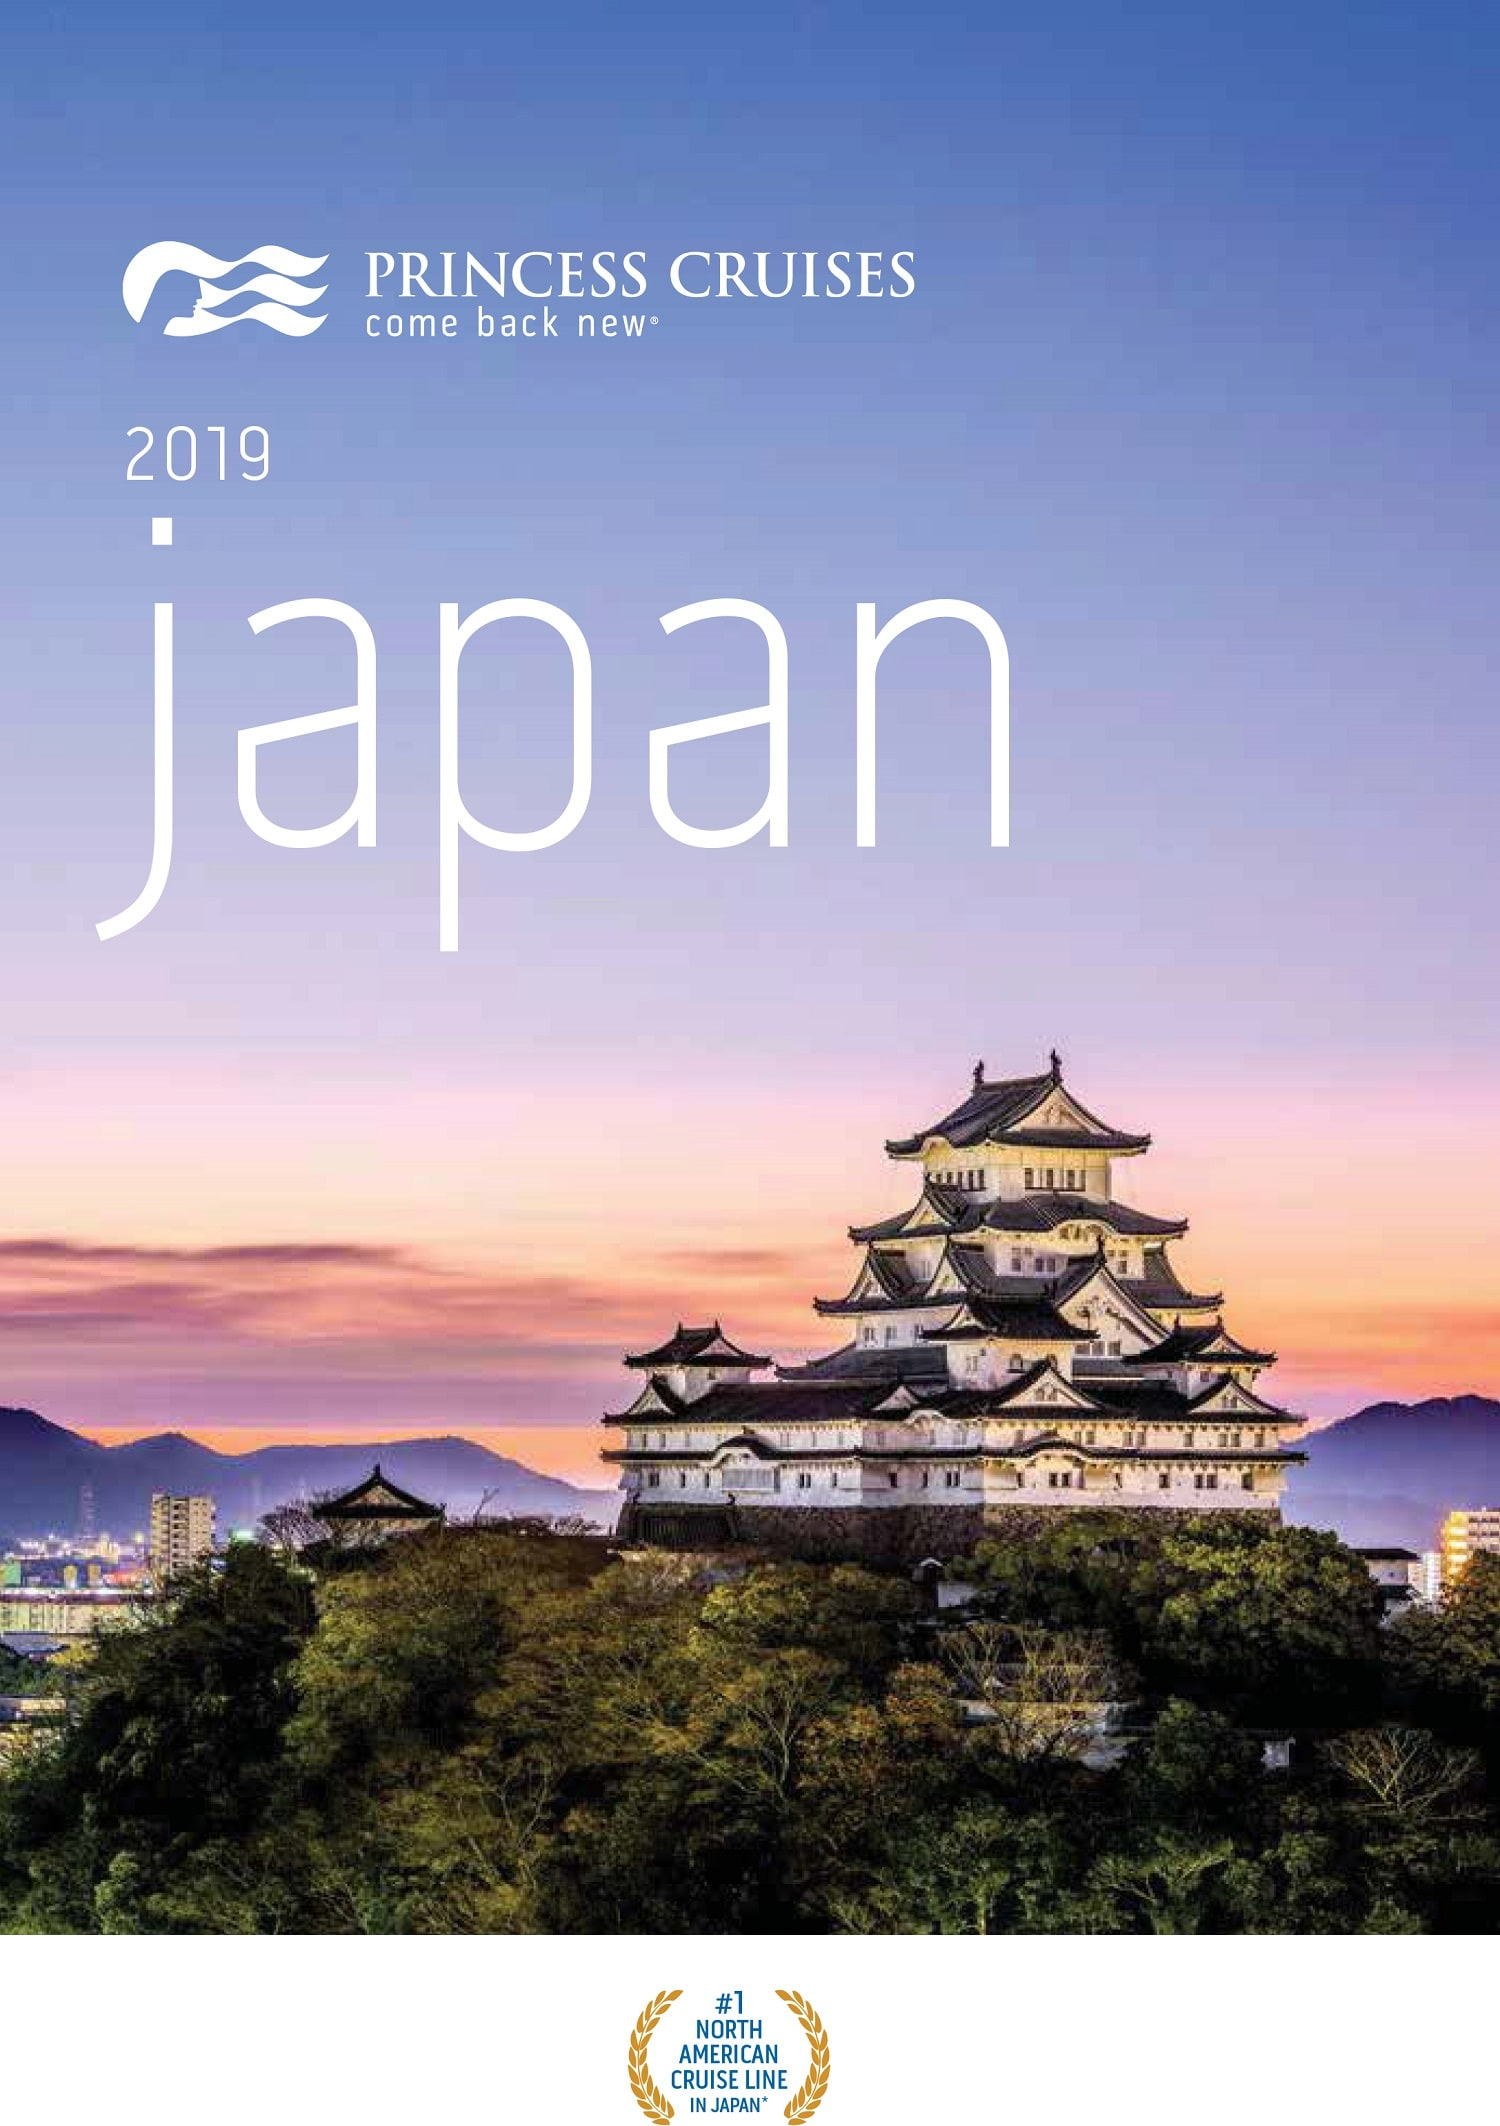 Princess Cruises Announces 2019 Japan Cruise Program